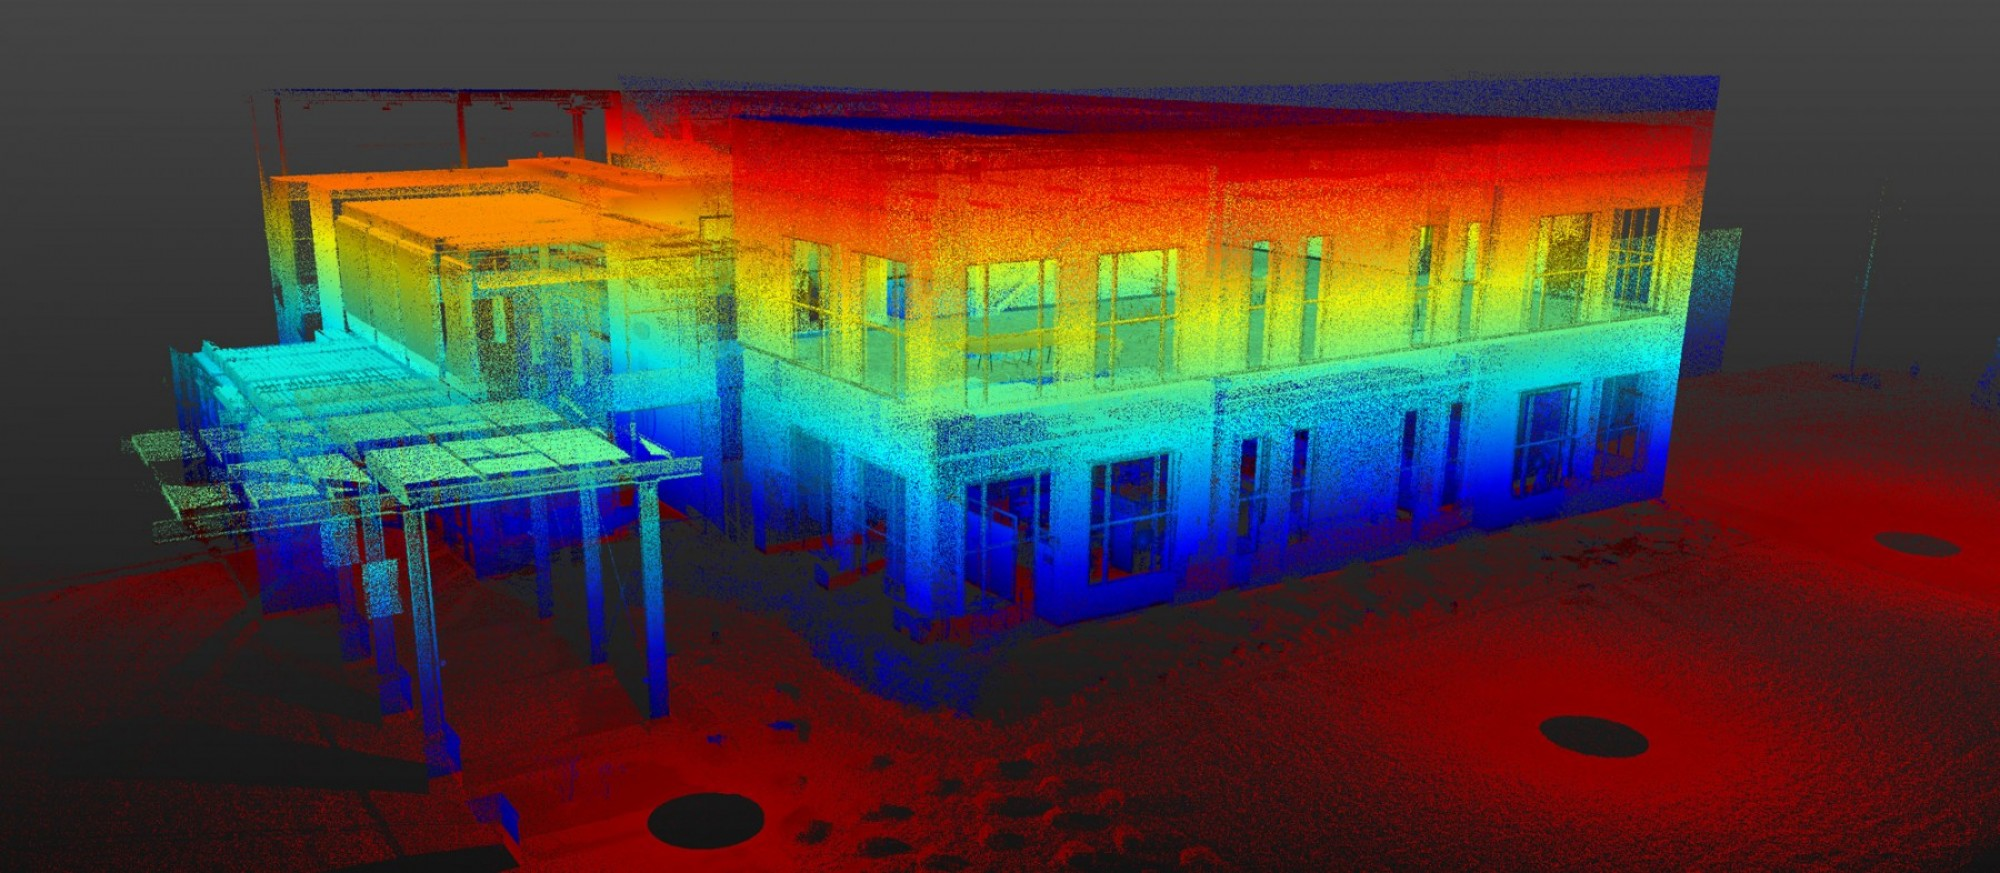 Civil engineering surveying architecture landscape for Architecture 3d laser scanner